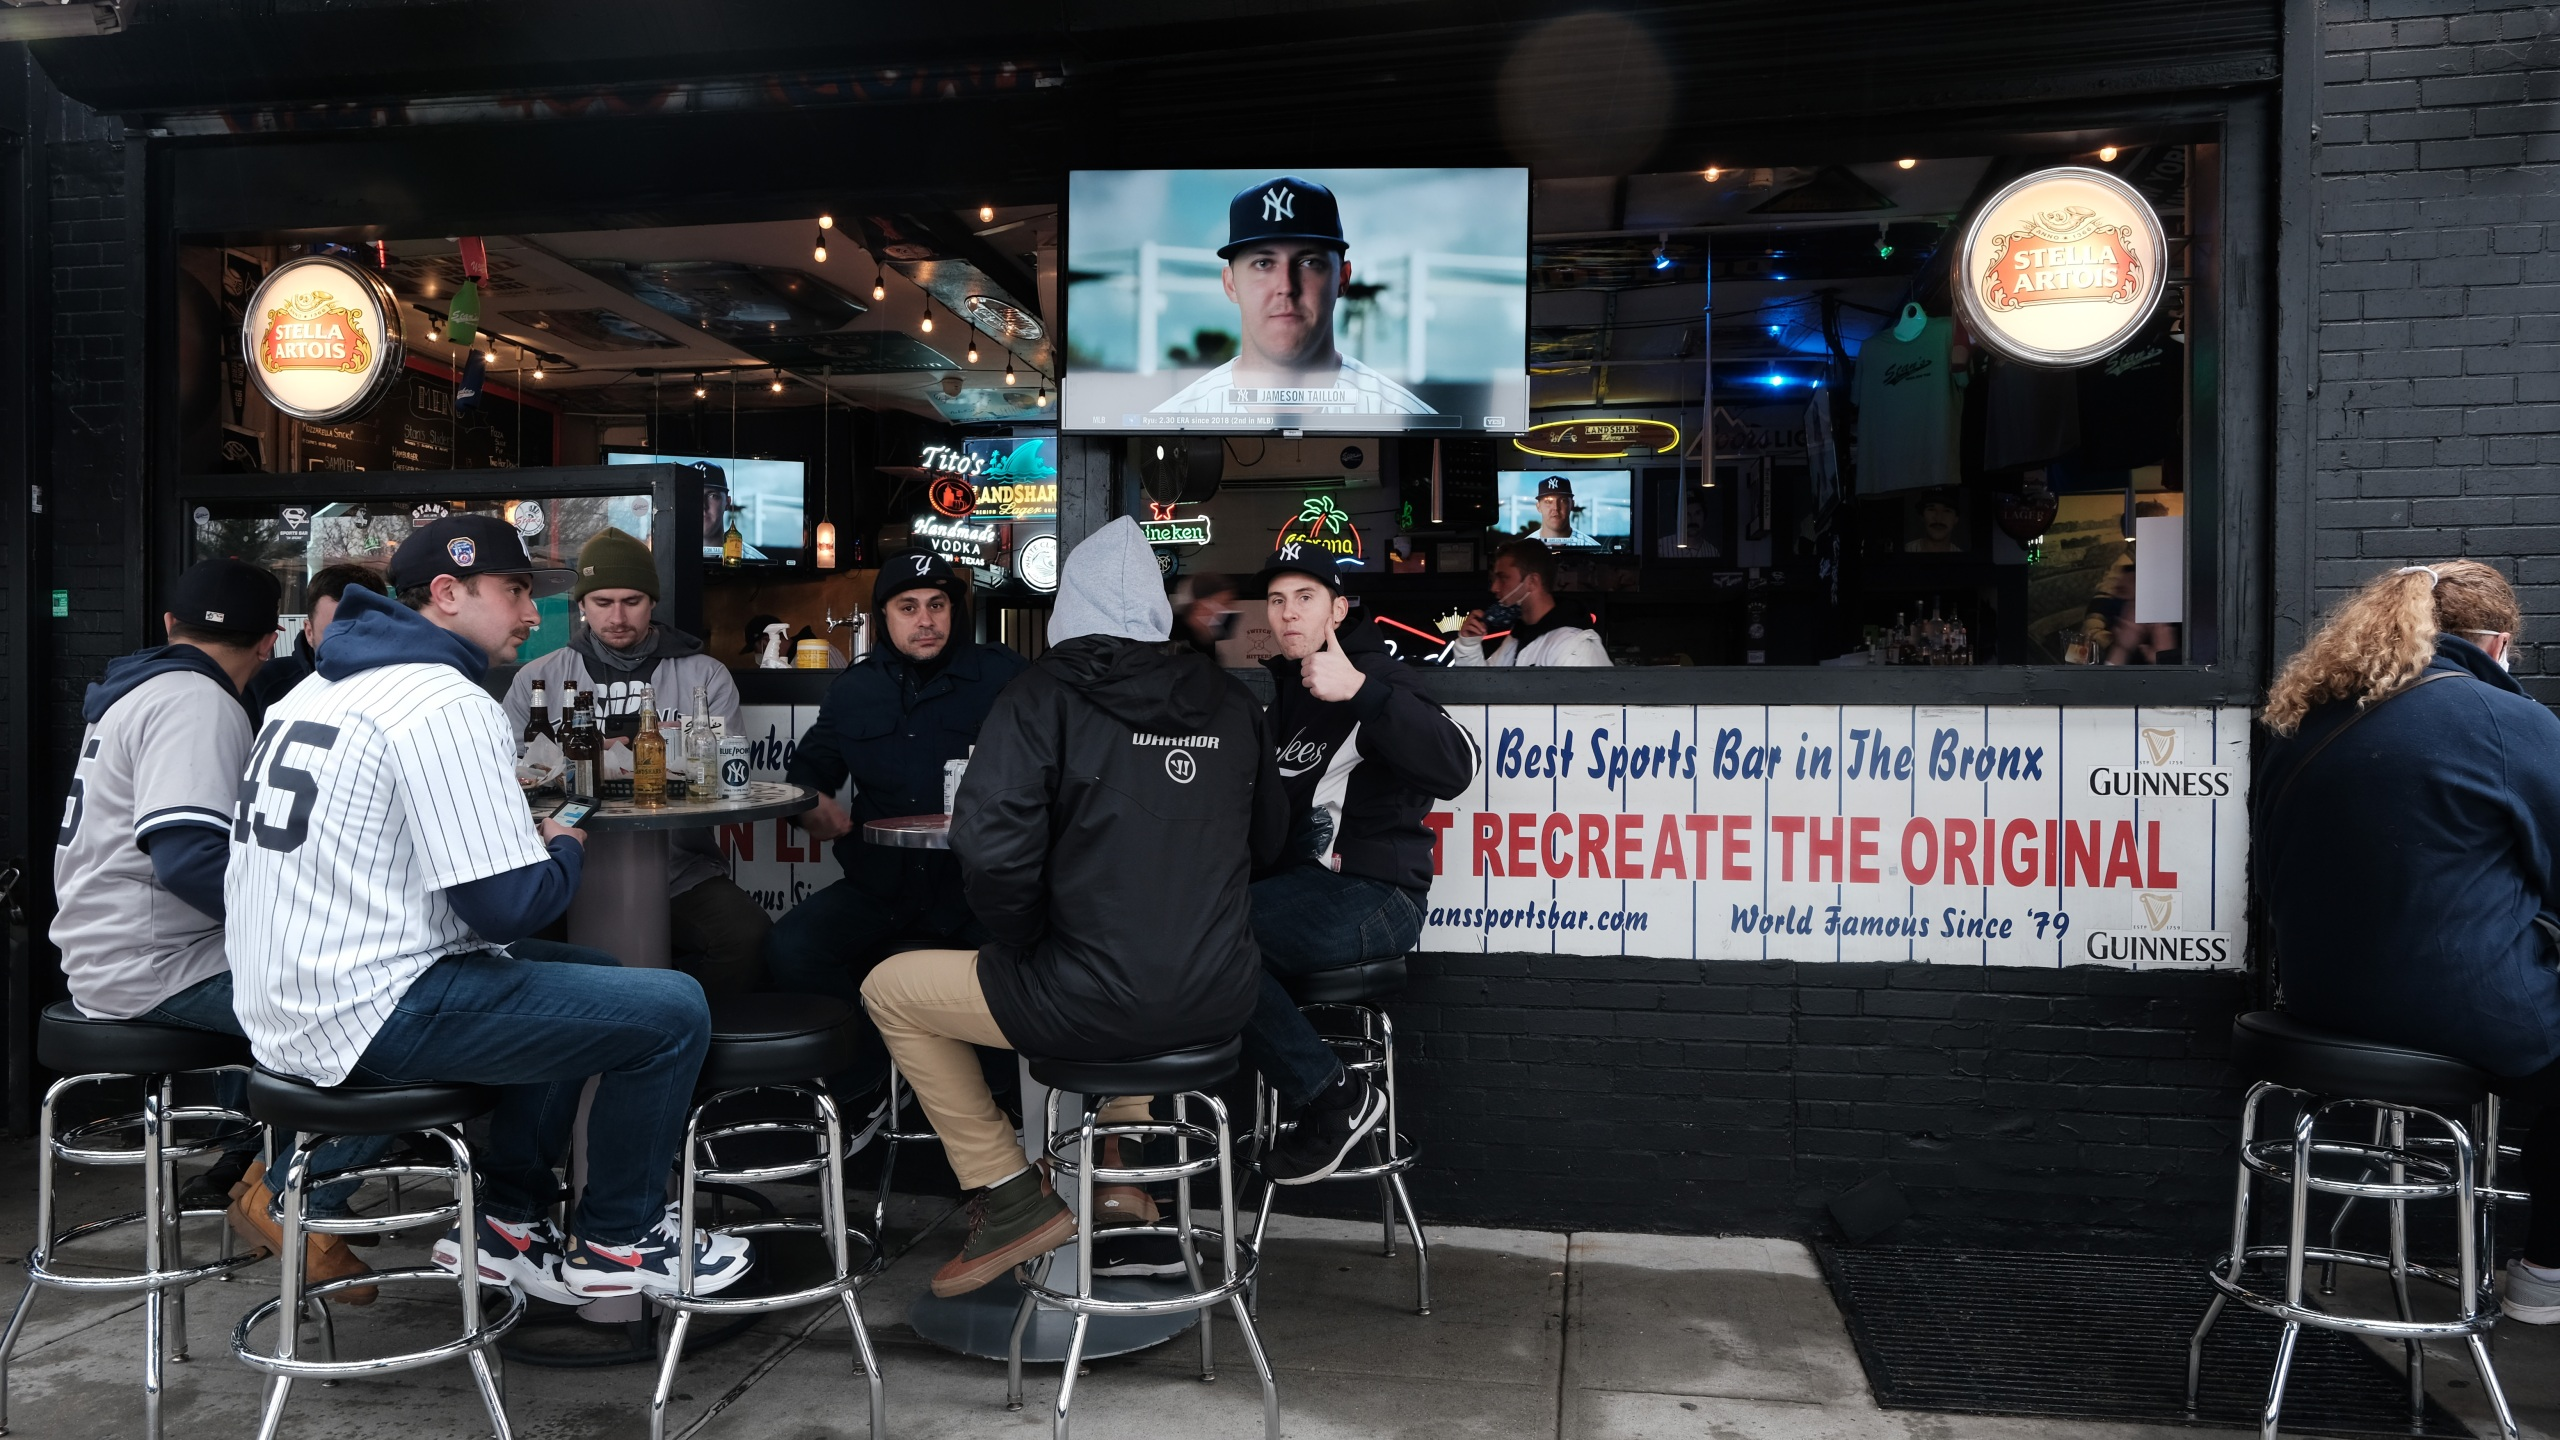 People gather at restaurants and bars outside of Yankee Stadium in the Bronx for the Opening Day of baseball season on April 1, 2021 in New York City. (Spencer Platt/Getty Images)